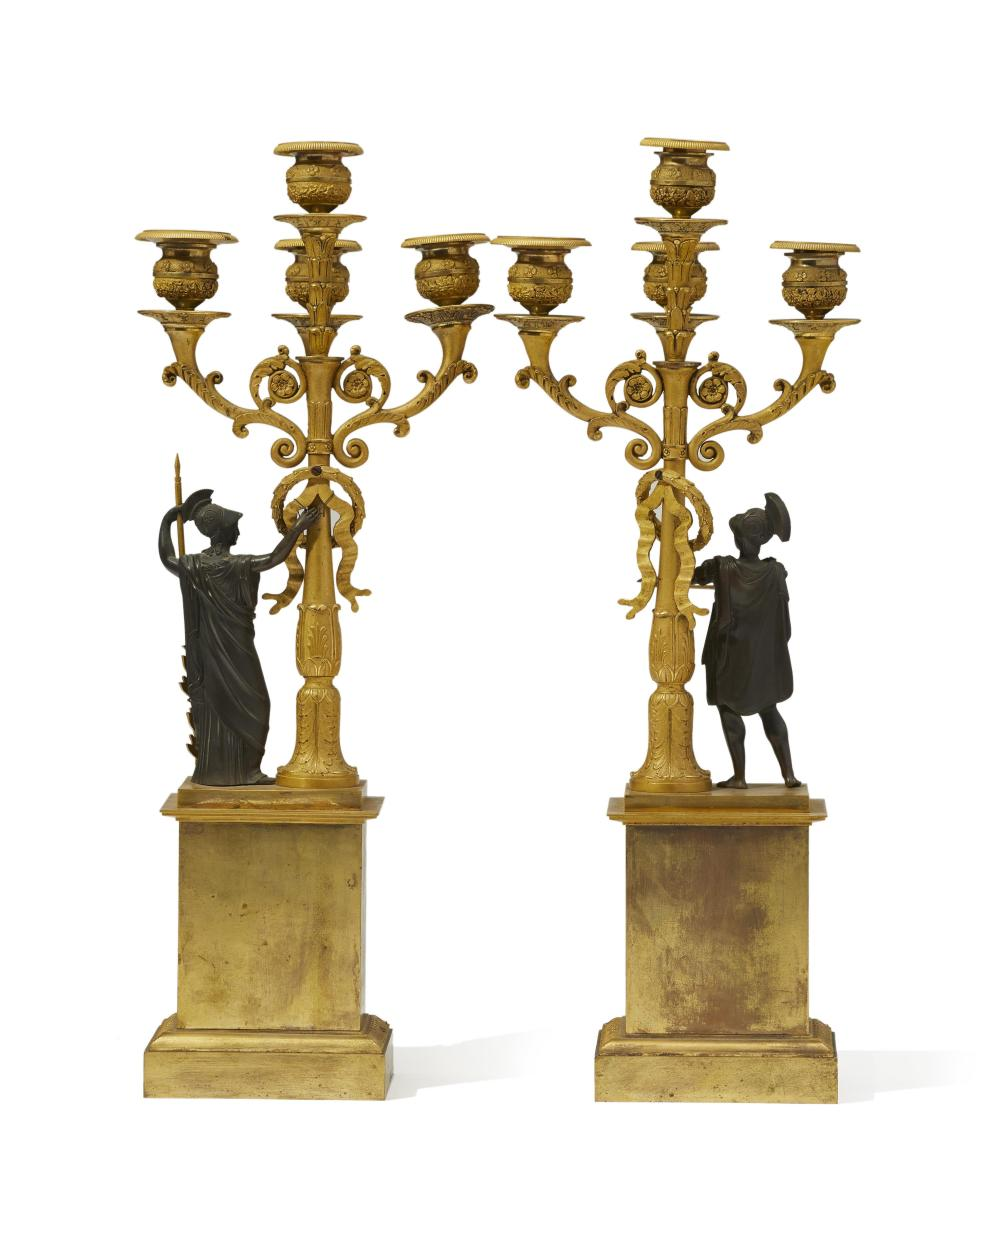 A pair of French Empire-style gilt-bronze figural candelabra